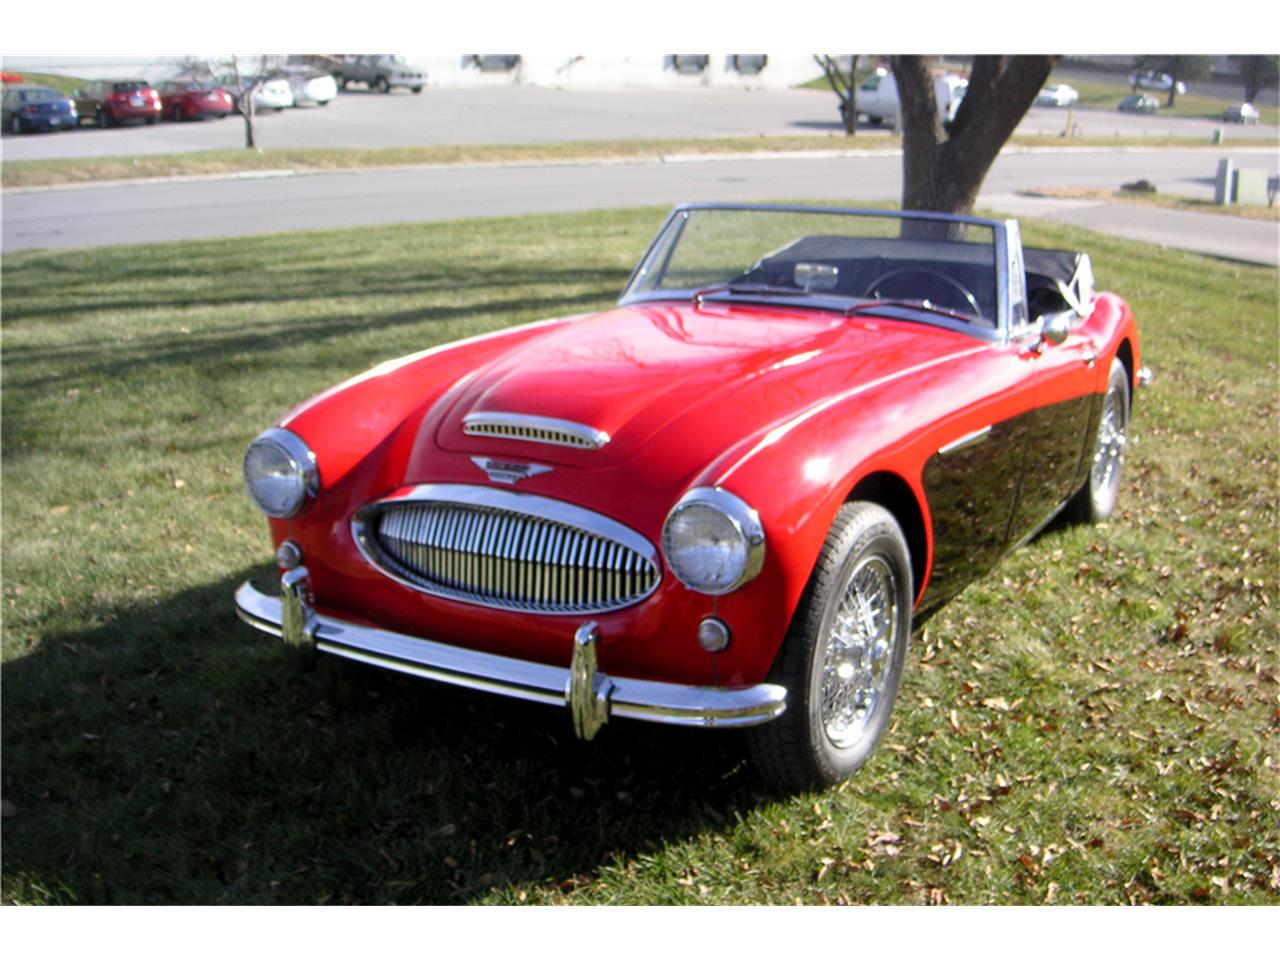 Large Picture of Classic 1965 3000 Mark III BJ8 located in Scottsdale Arizona Auction Vehicle Offered by Barrett-Jackson Auctions - MGP5